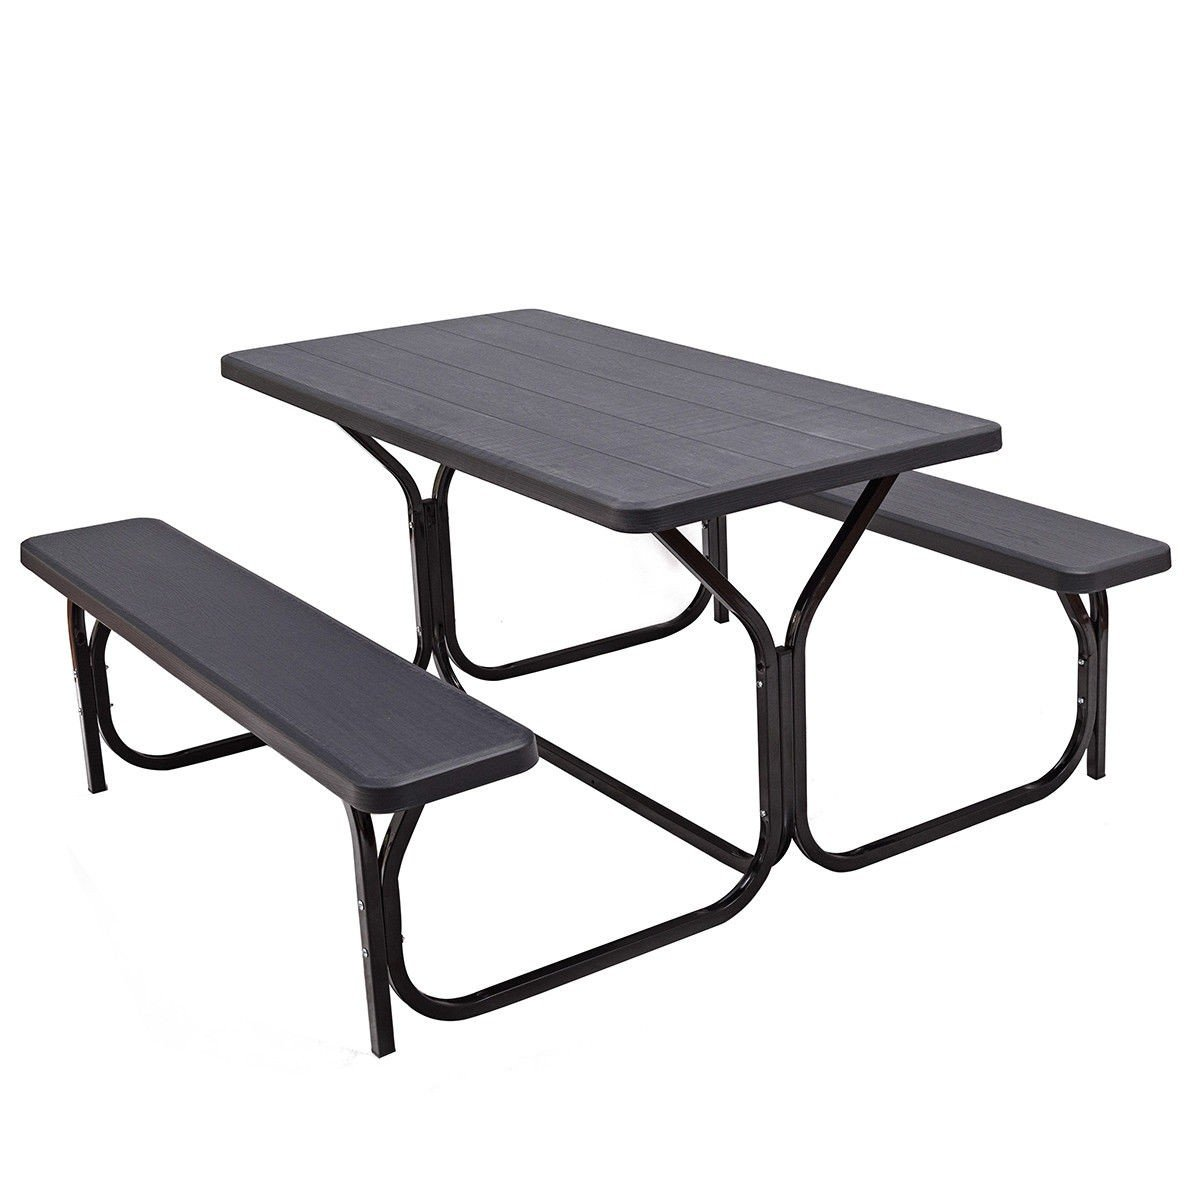 Custpromo Picnic Table and Bench Set All Weather Resistant Steel Frame Wood-Like Texture Outdoor Dining Garden Patio Camping Tables (Black)